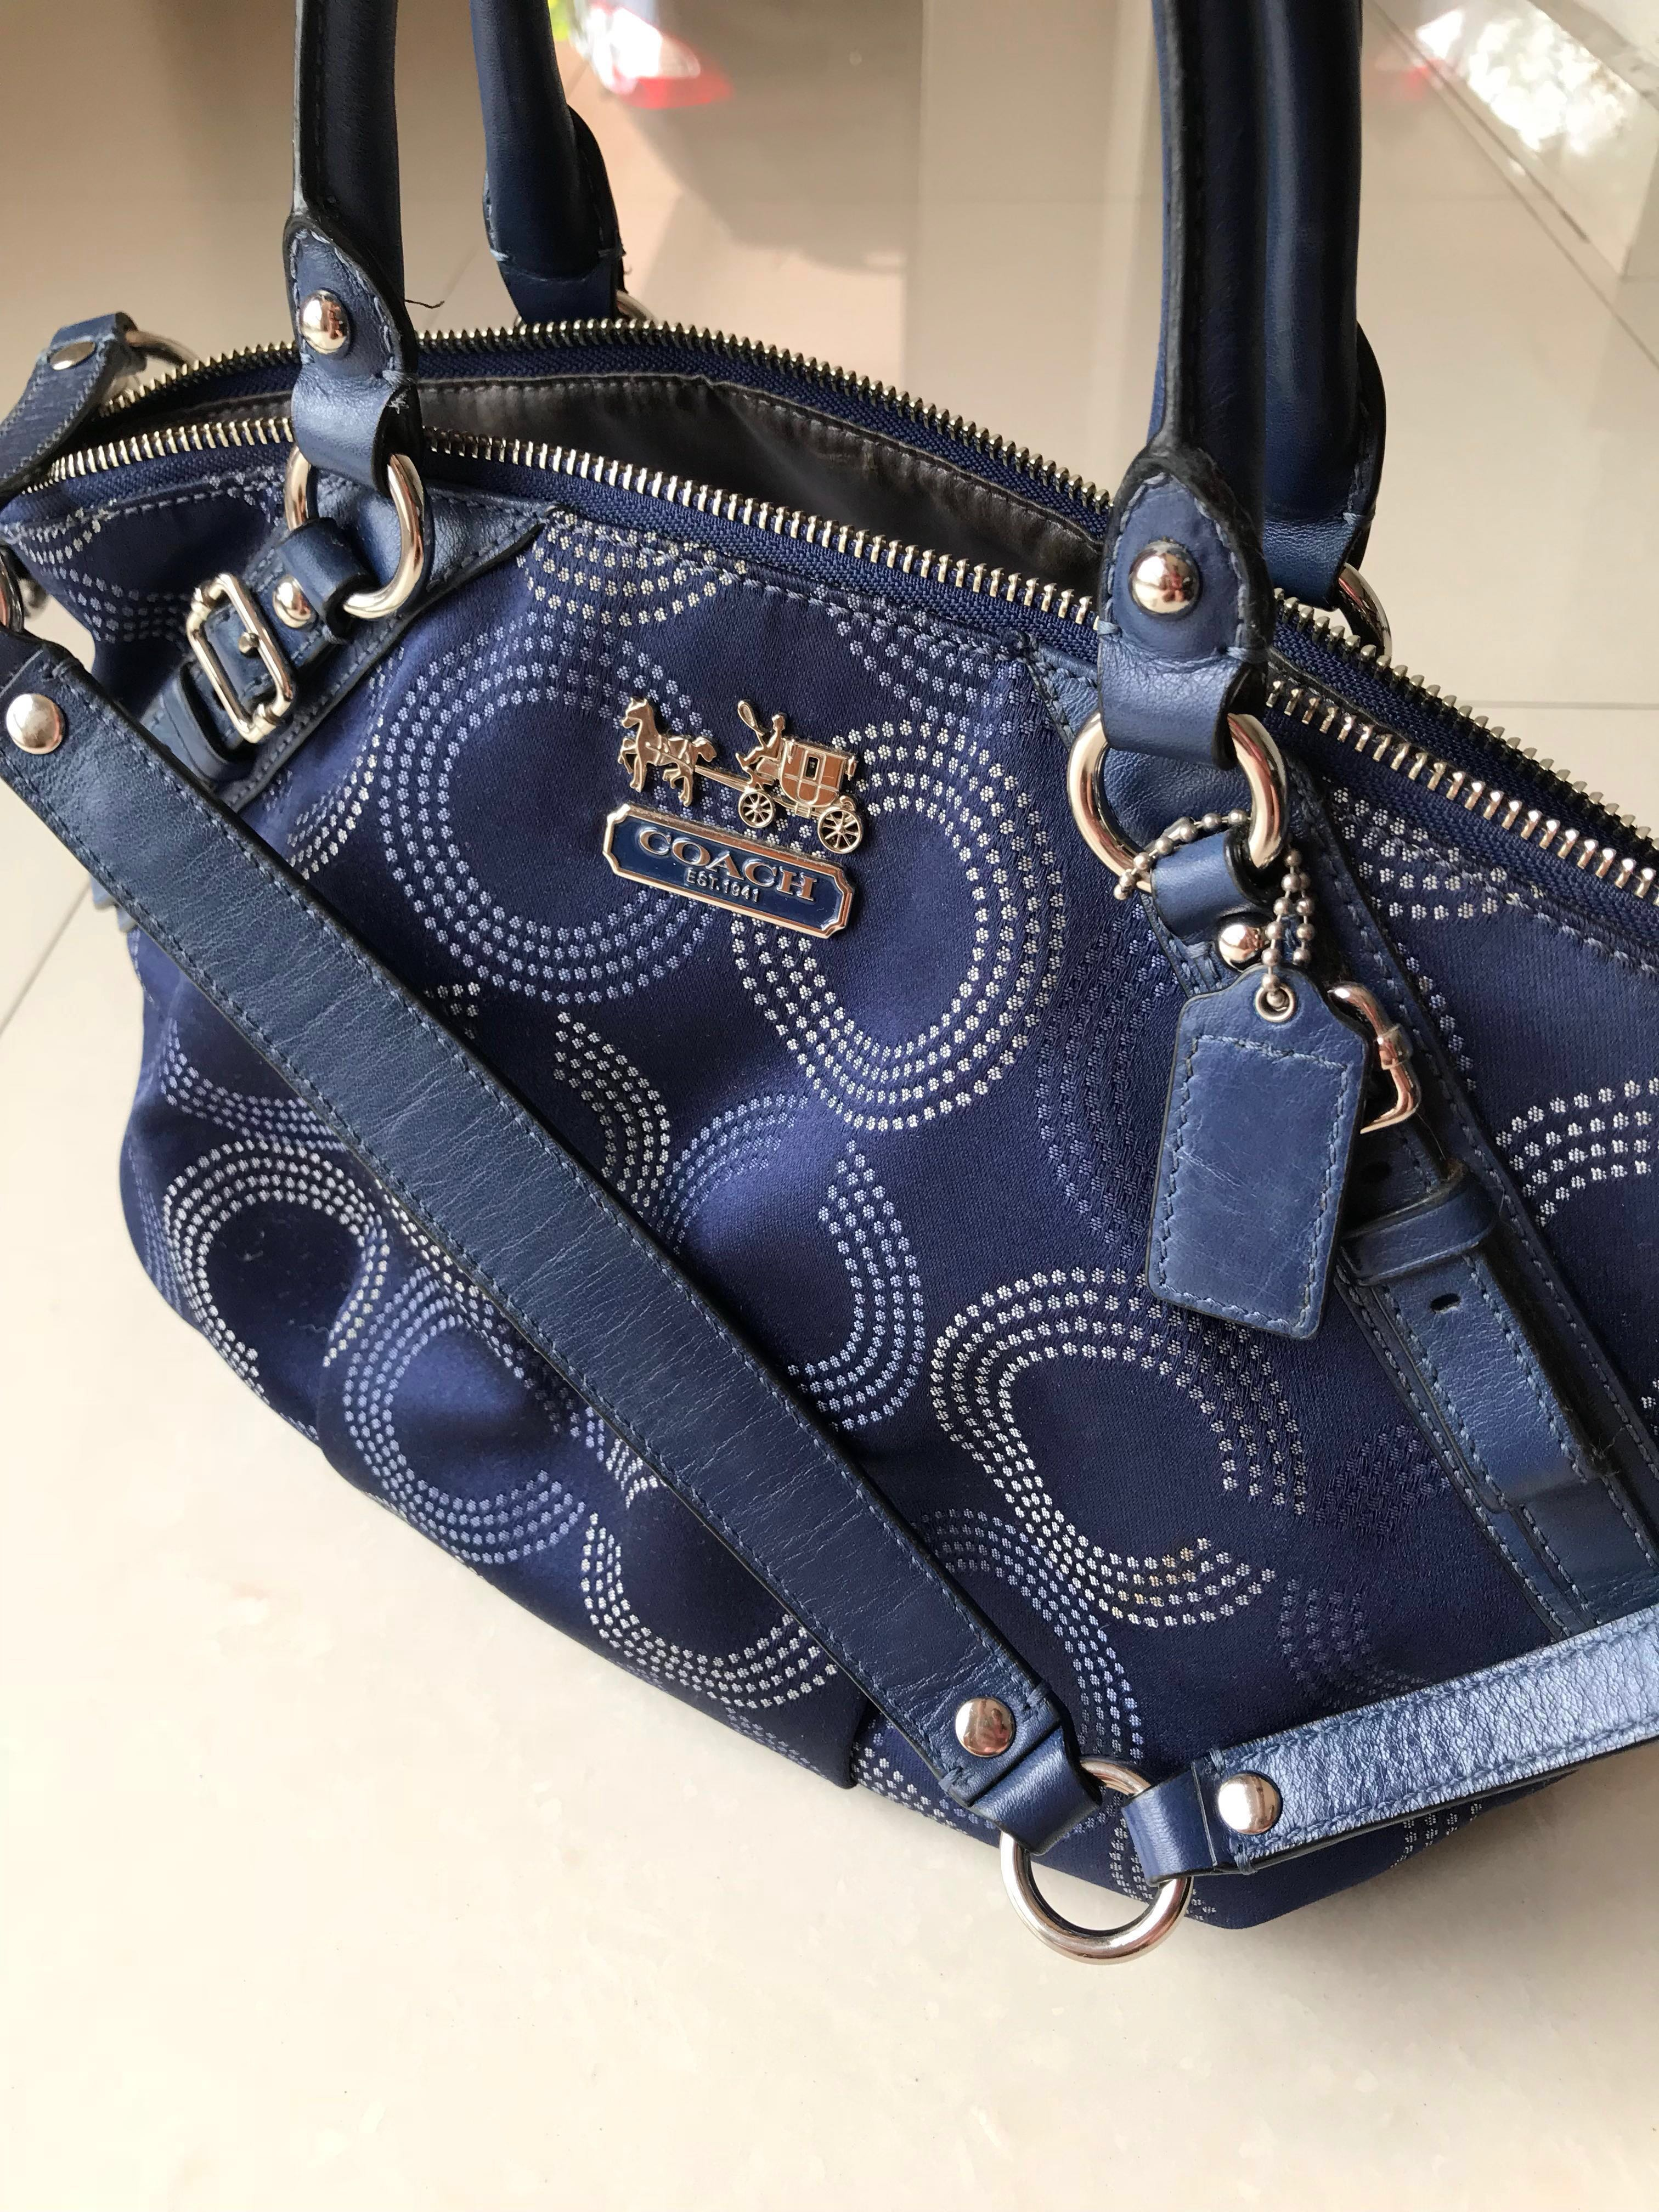 9d505c8d62 Authentic Coach Bag- Navy blue limited edition from USA